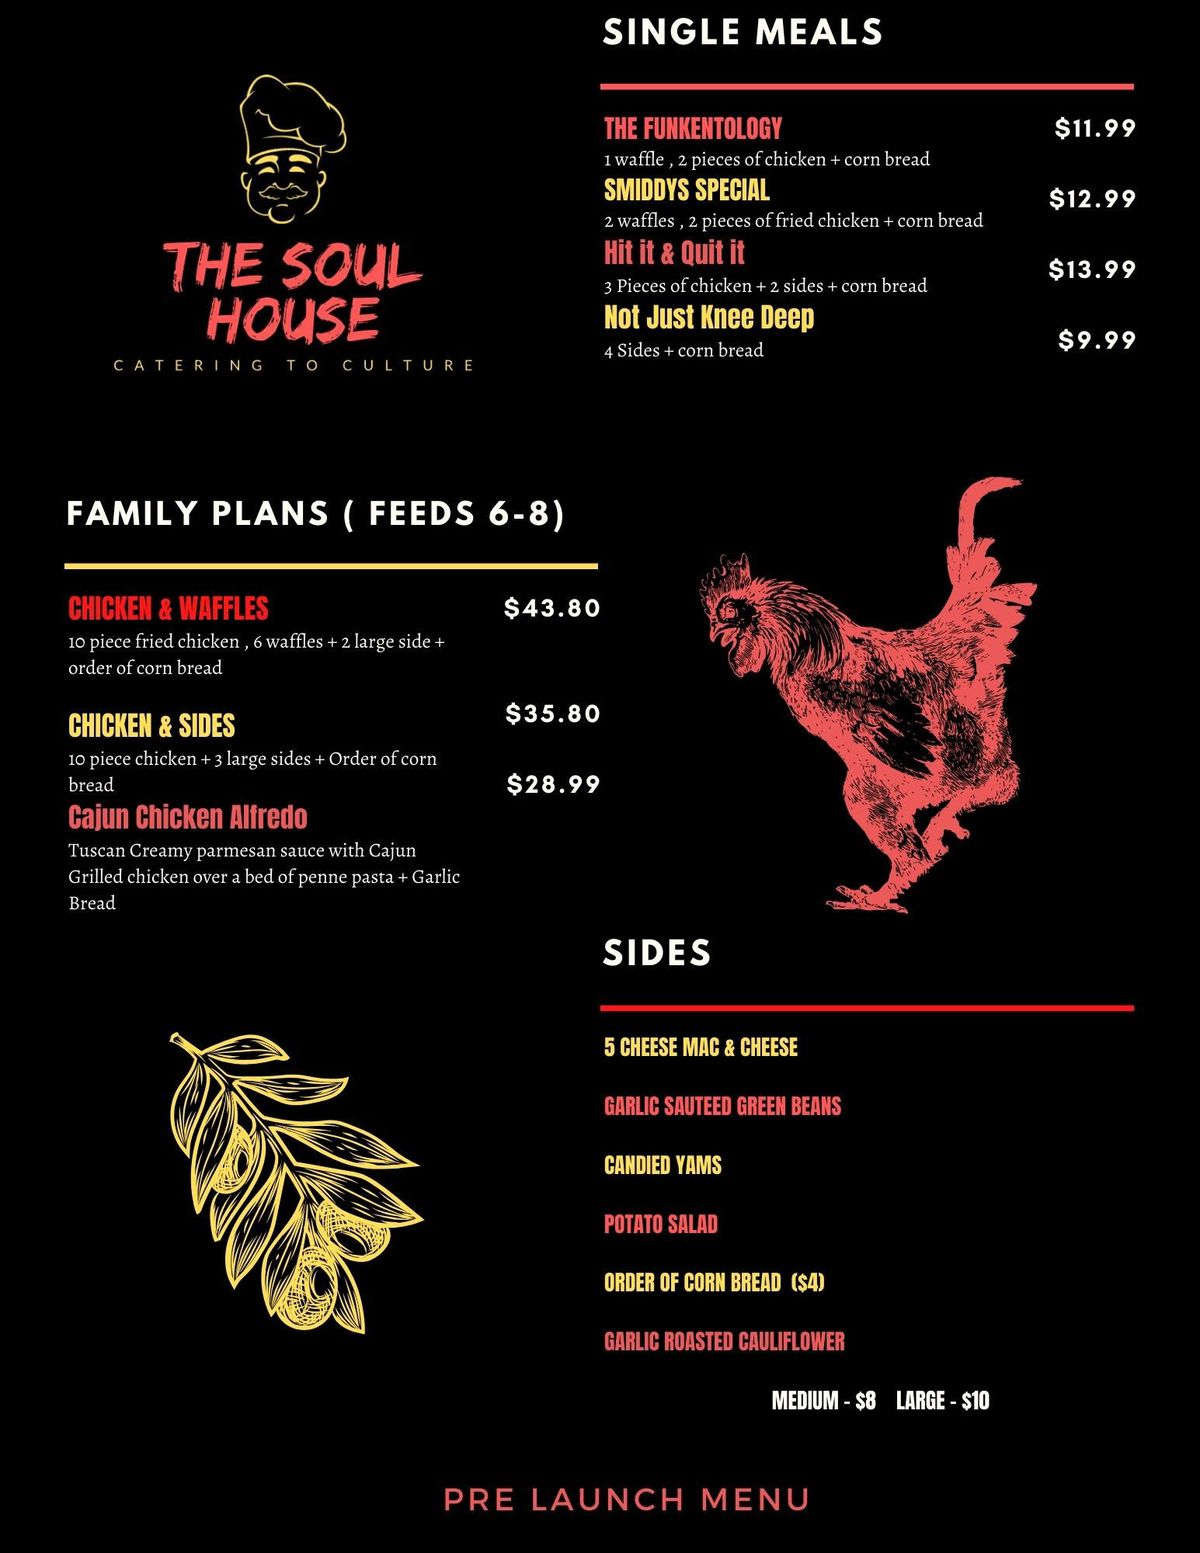 The menu from The Soul House